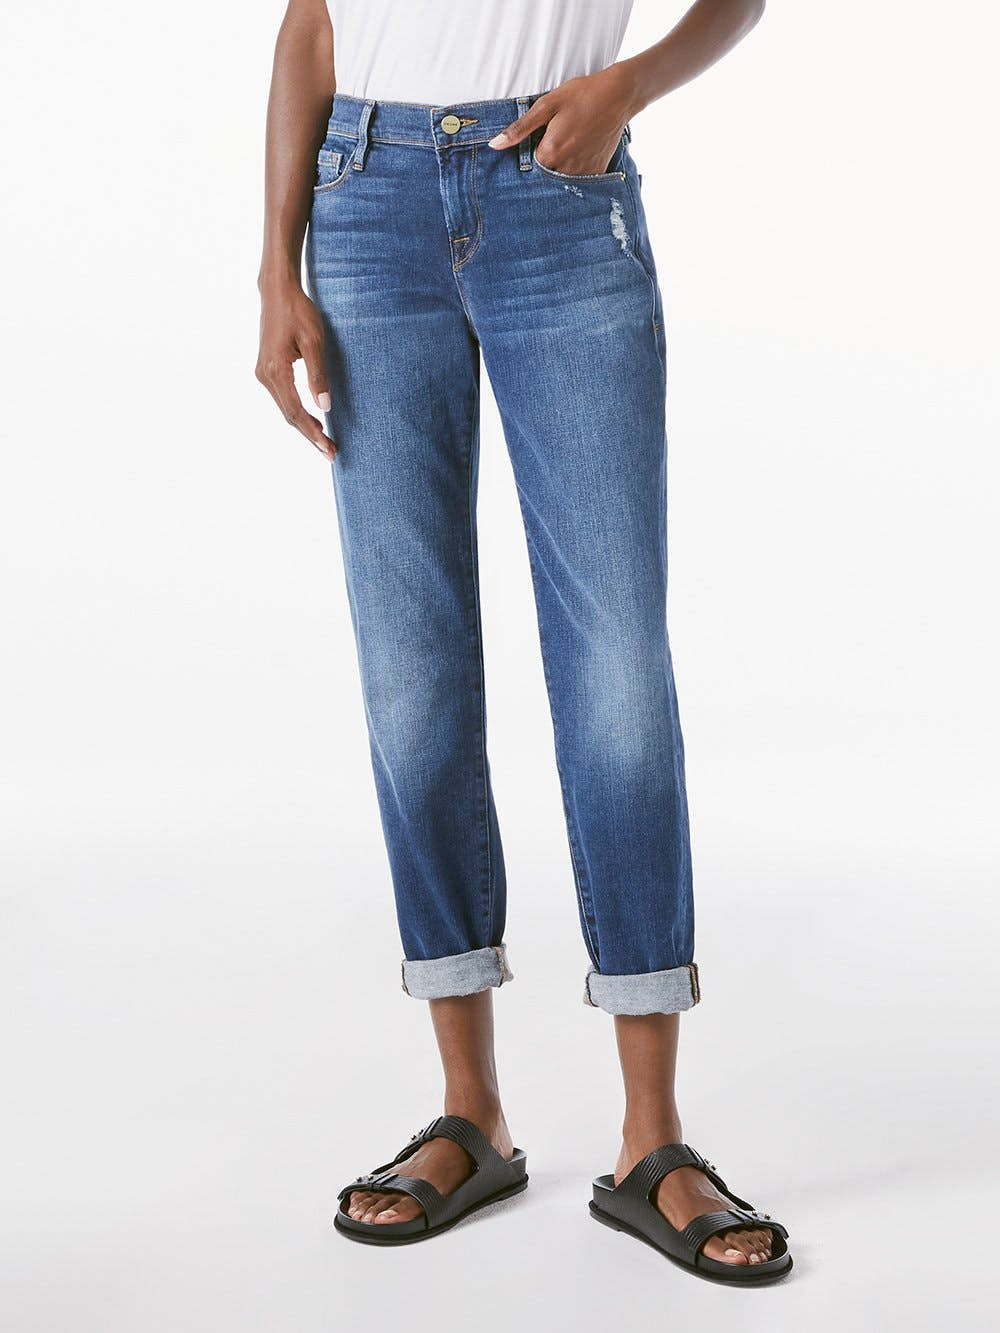 jeans front view 2